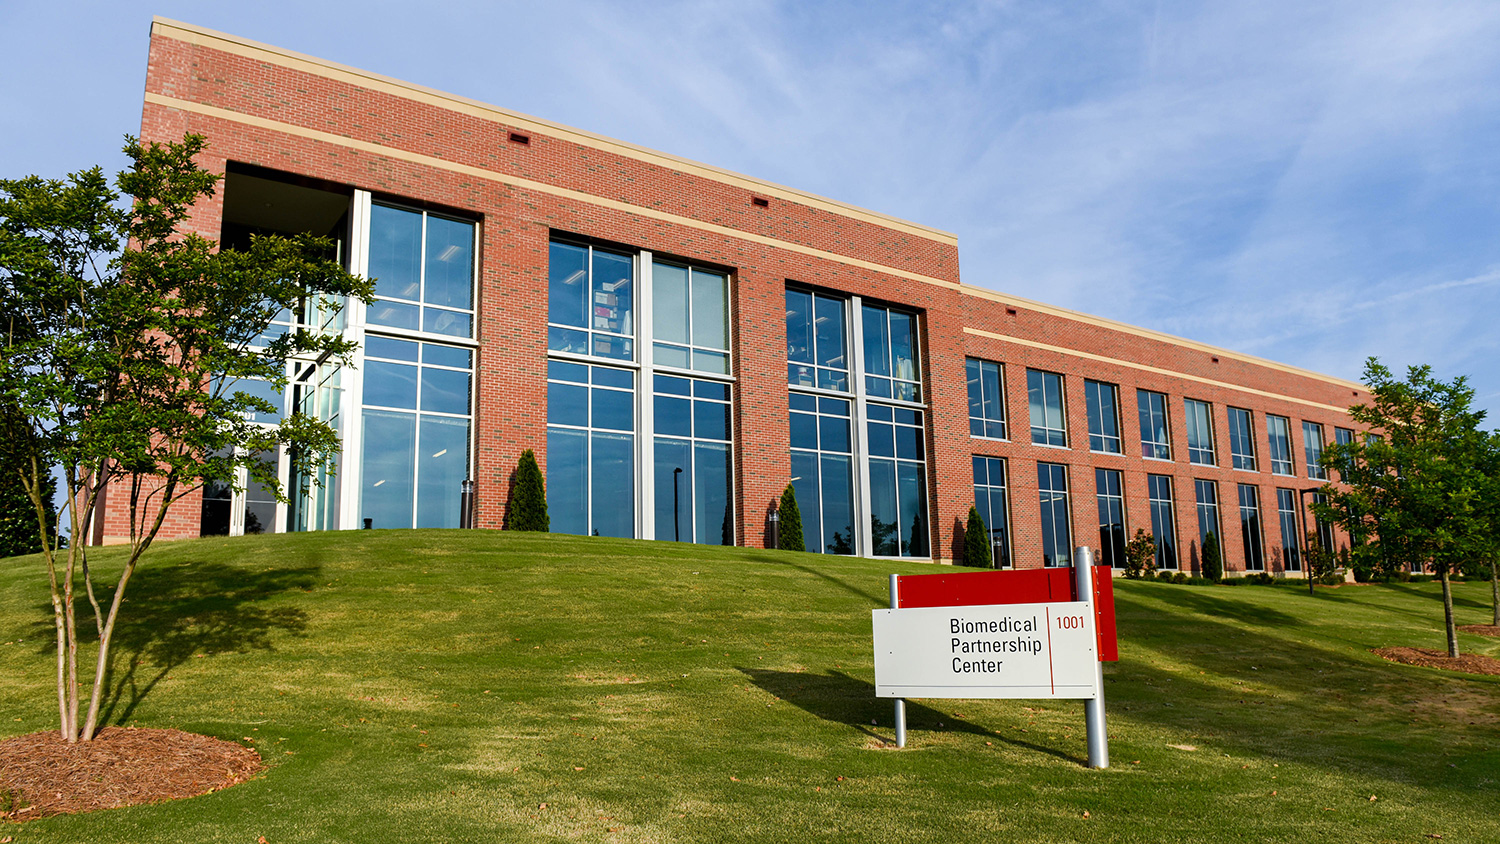 Exterior of the Biomedical Partnership Center on NC State's campus